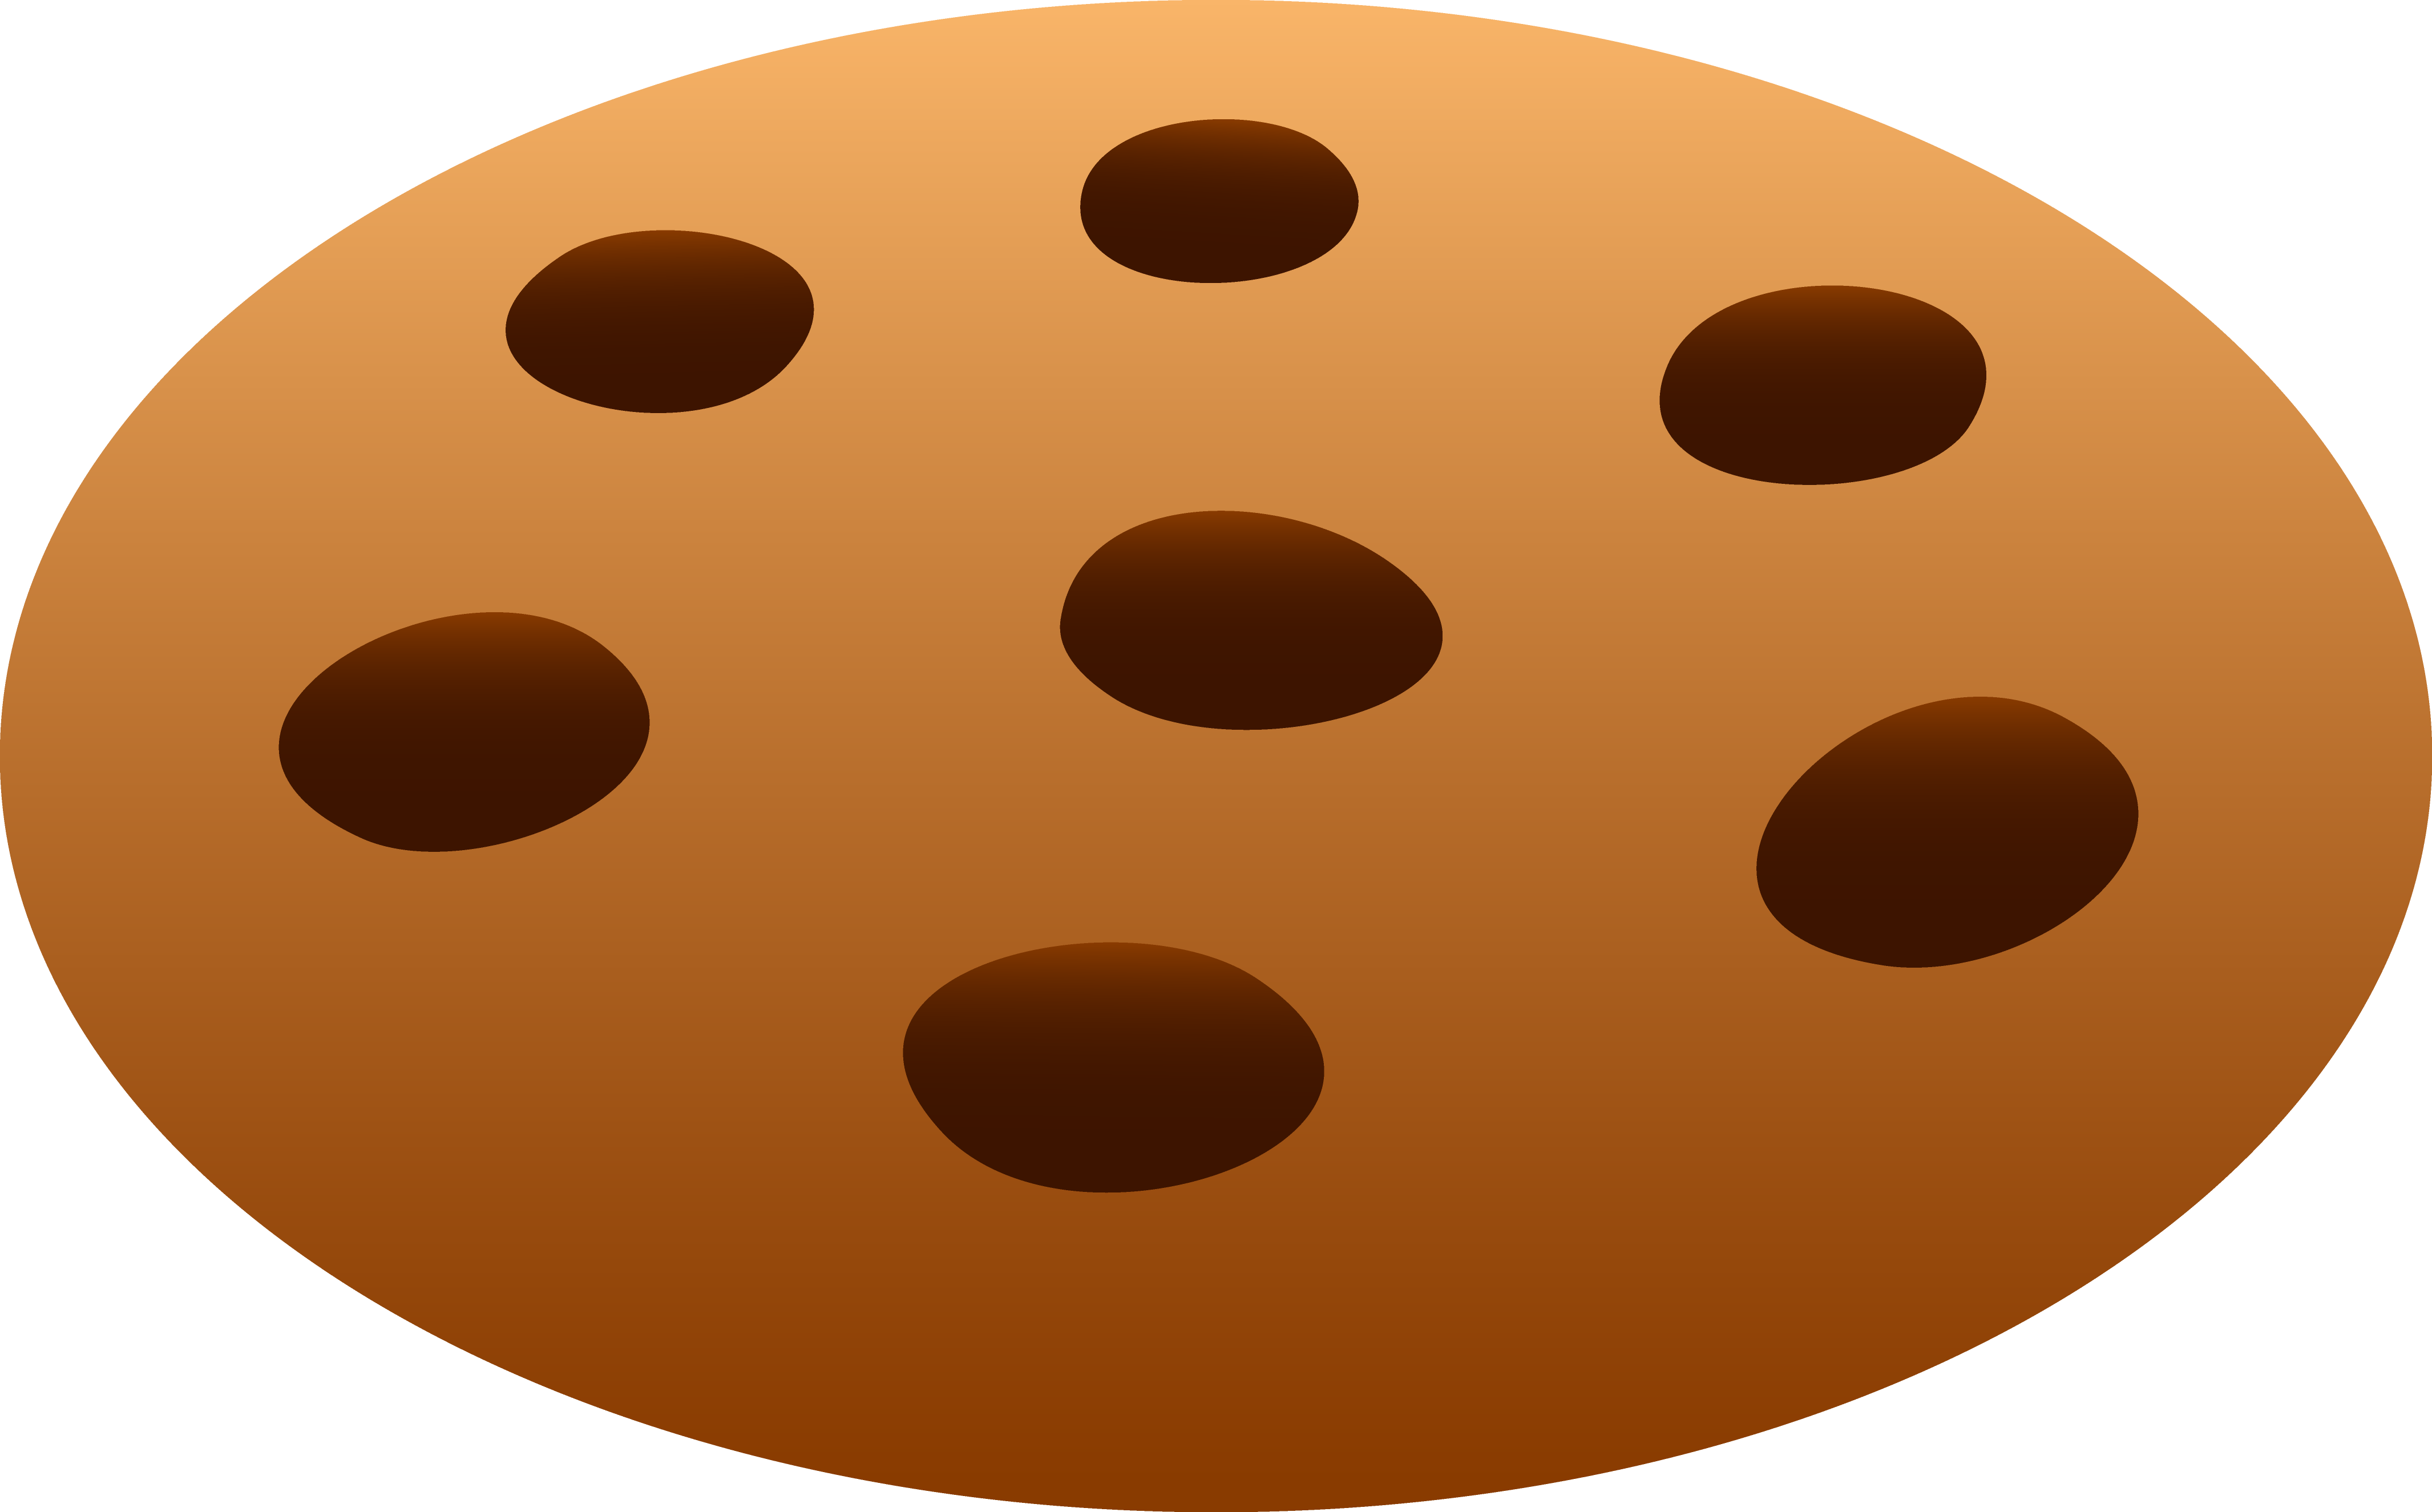 An orange cookie clipart clipart download Best Chocolate Chip Cookie Clipart #15856 - Clipartion.com clipart download